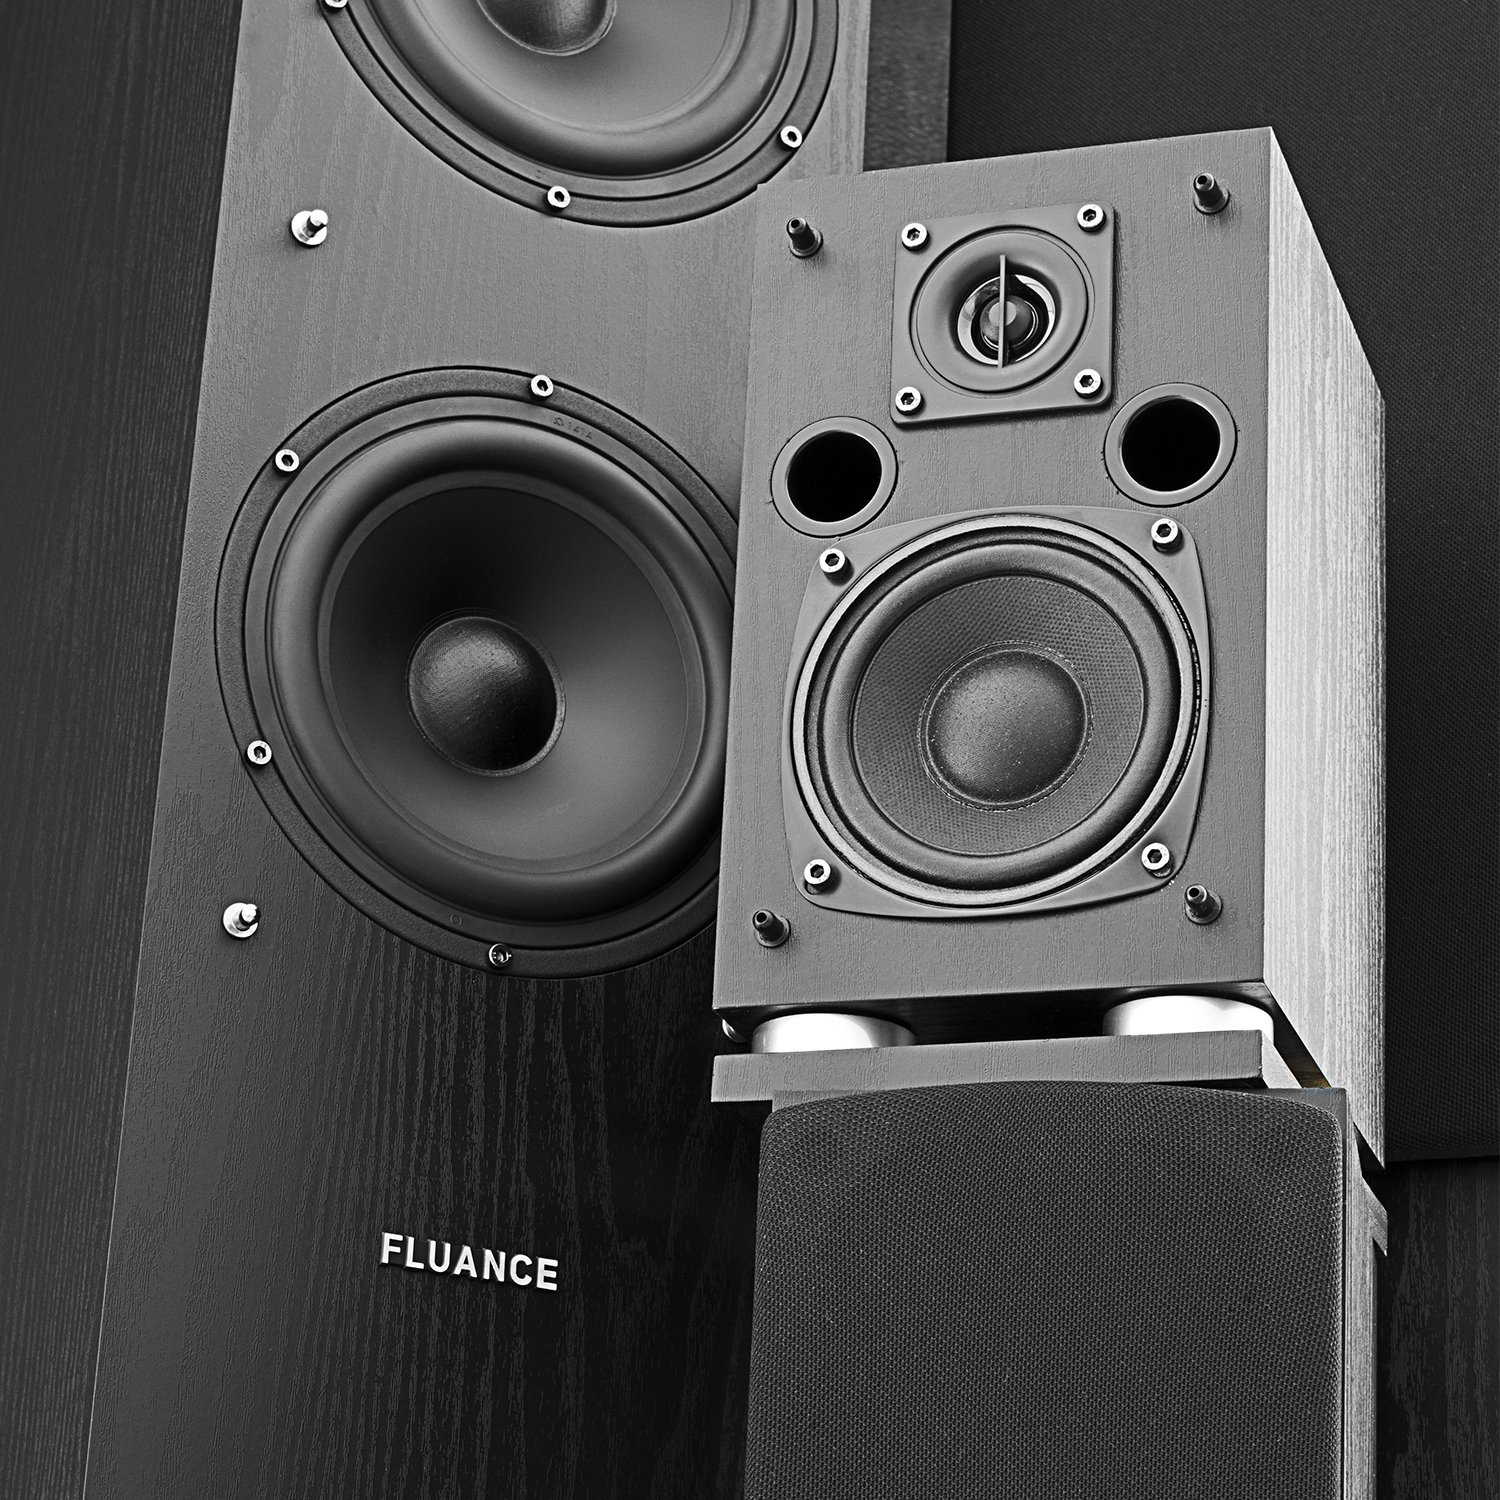 polk monopricembs the video videos audio speakers sounding best bookshelf ultrabudget cnet